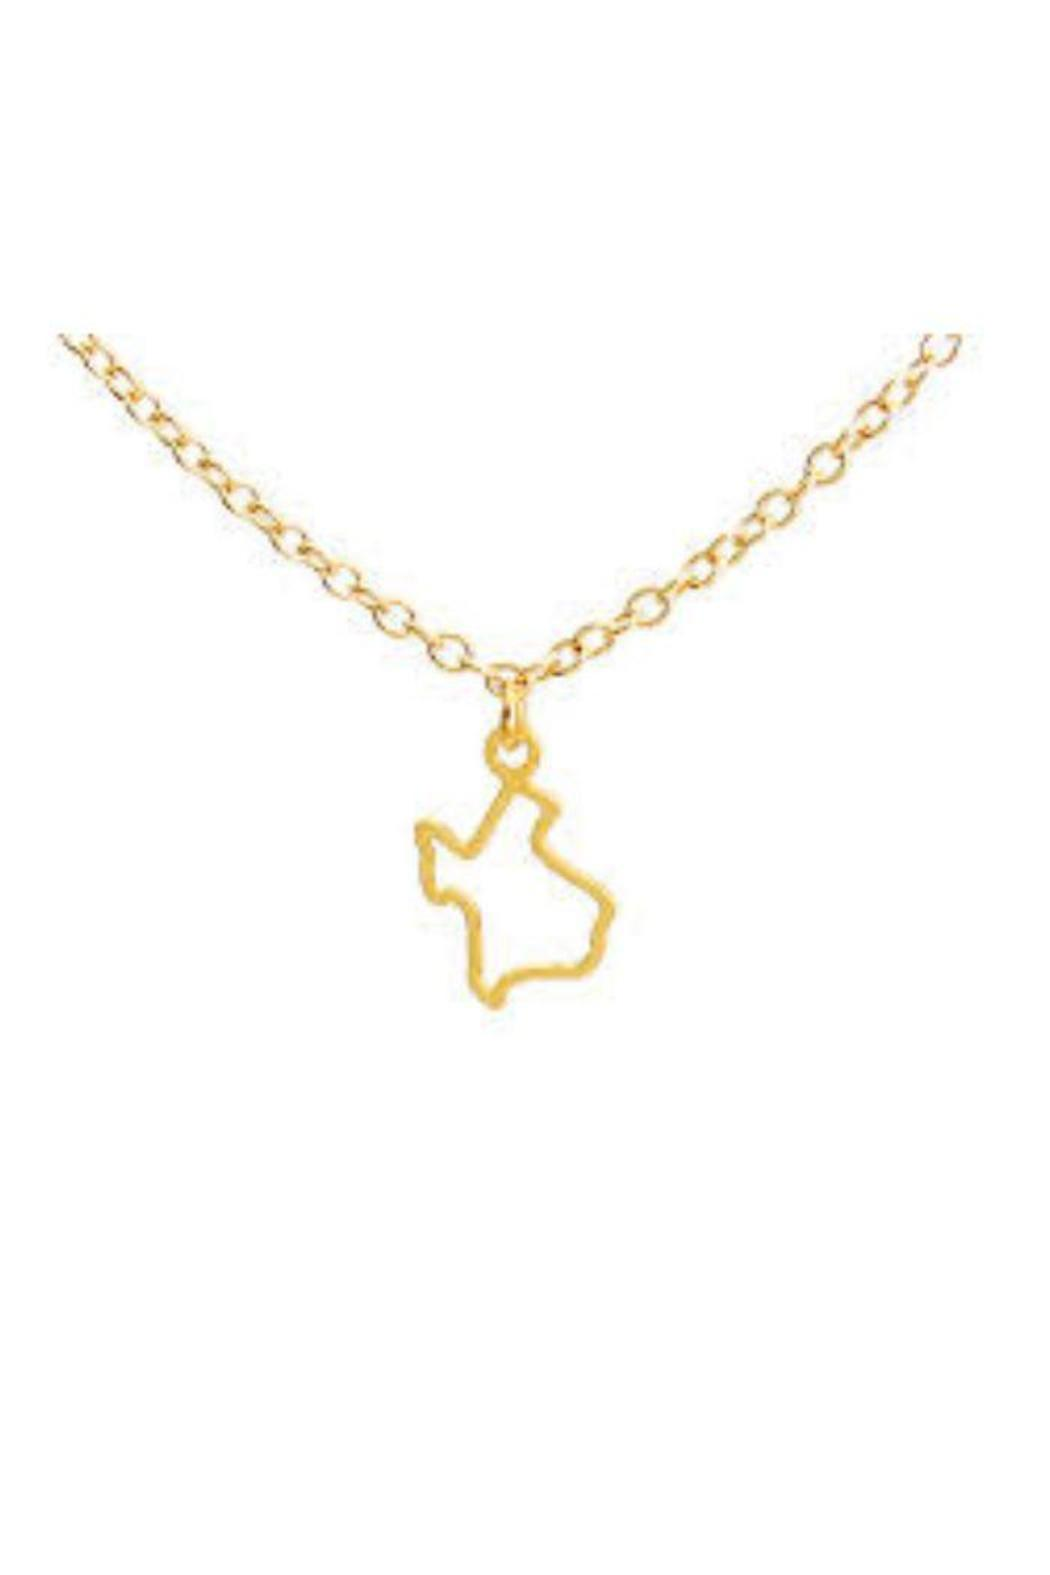 Kris nations tiny texas necklace from dallas by gemma collection kris nations tiny texas necklace front cropped image mozeypictures Images